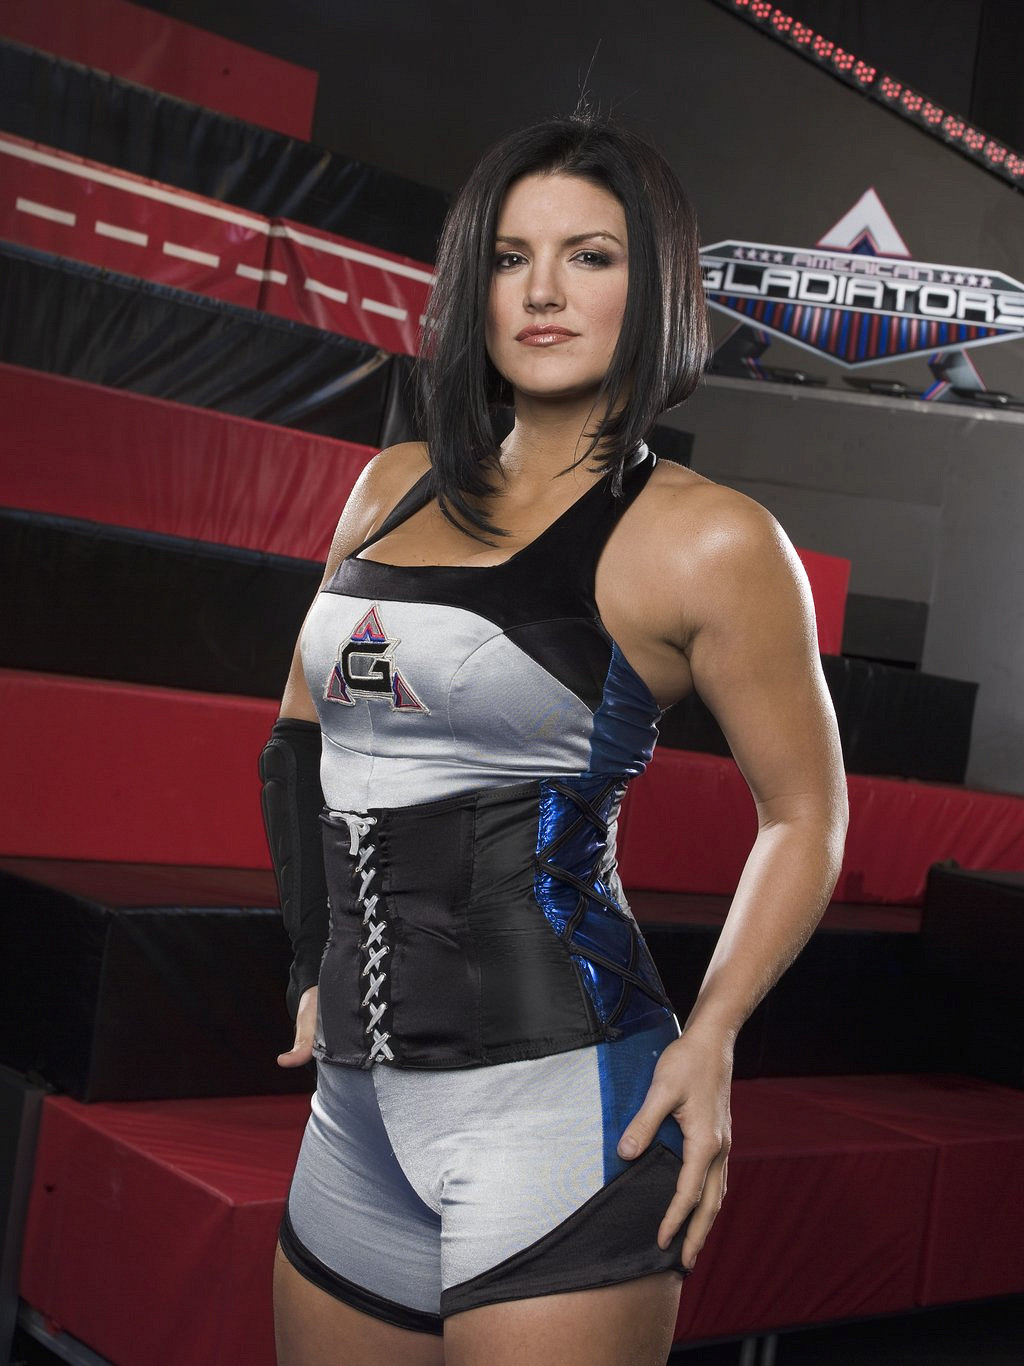 33 Hottest Gina Carano Bikini Sexy Pictures Show Her Legs